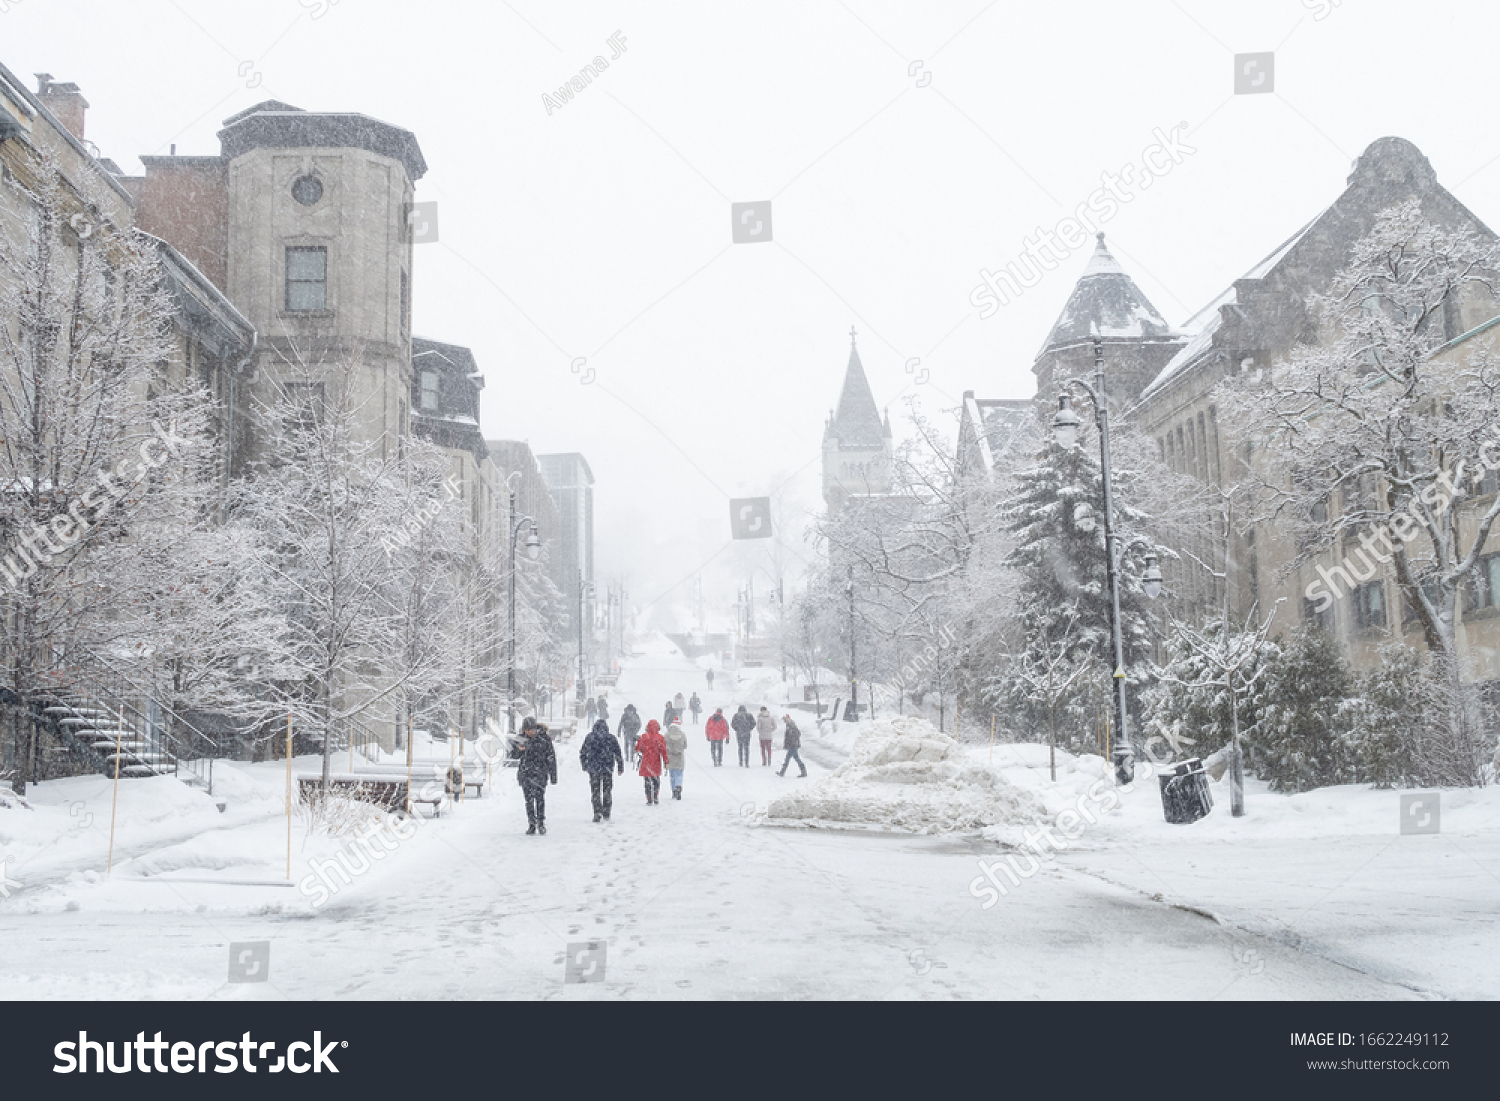 stock-photo-montreal-canada-february-vie